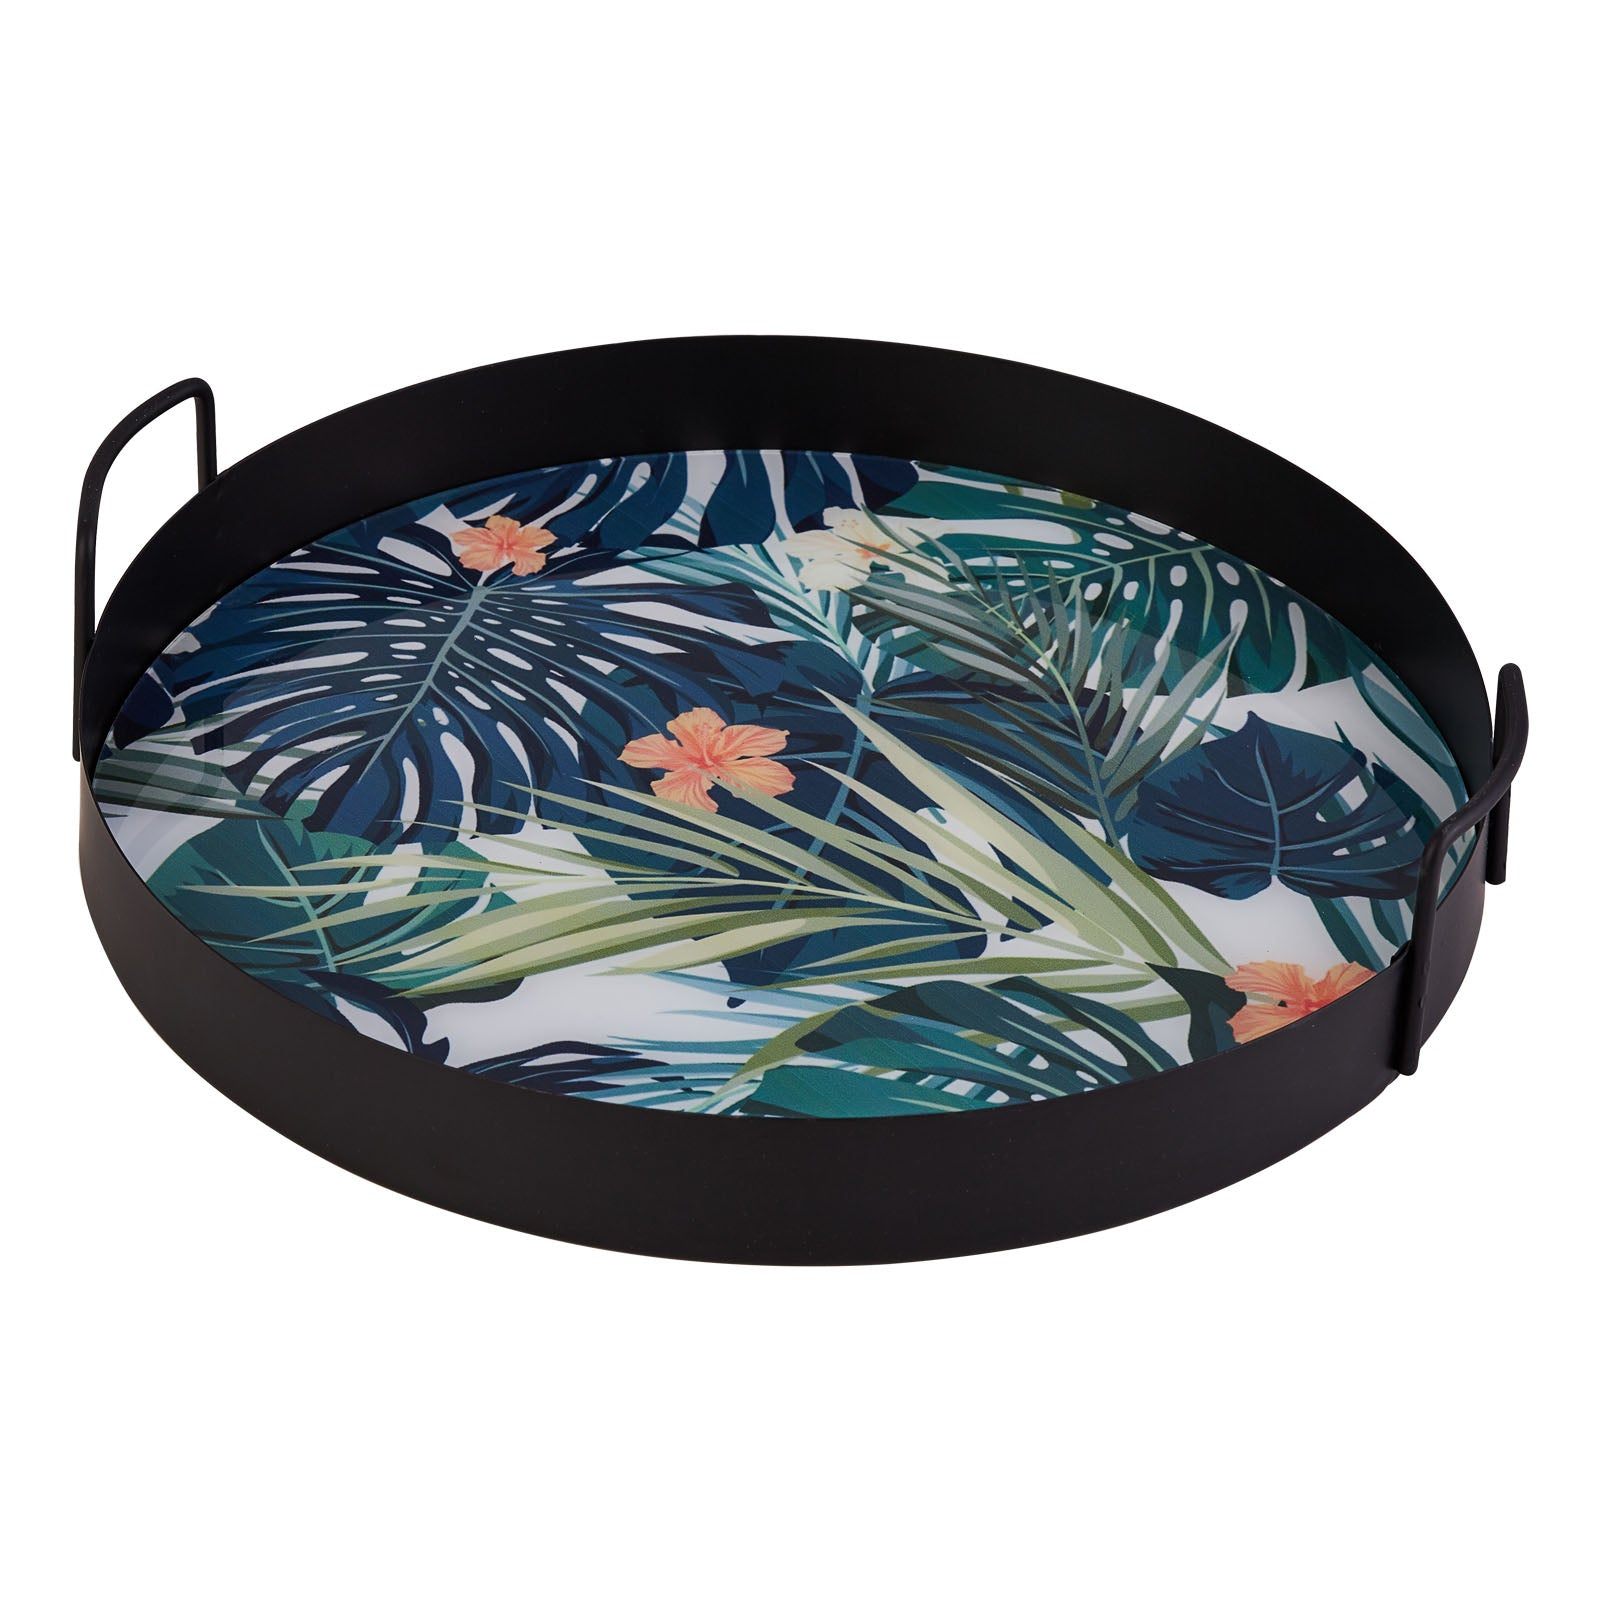 Pre-Order 30 days delivery Karaca Wild Metal Tray 153.03.07.9896